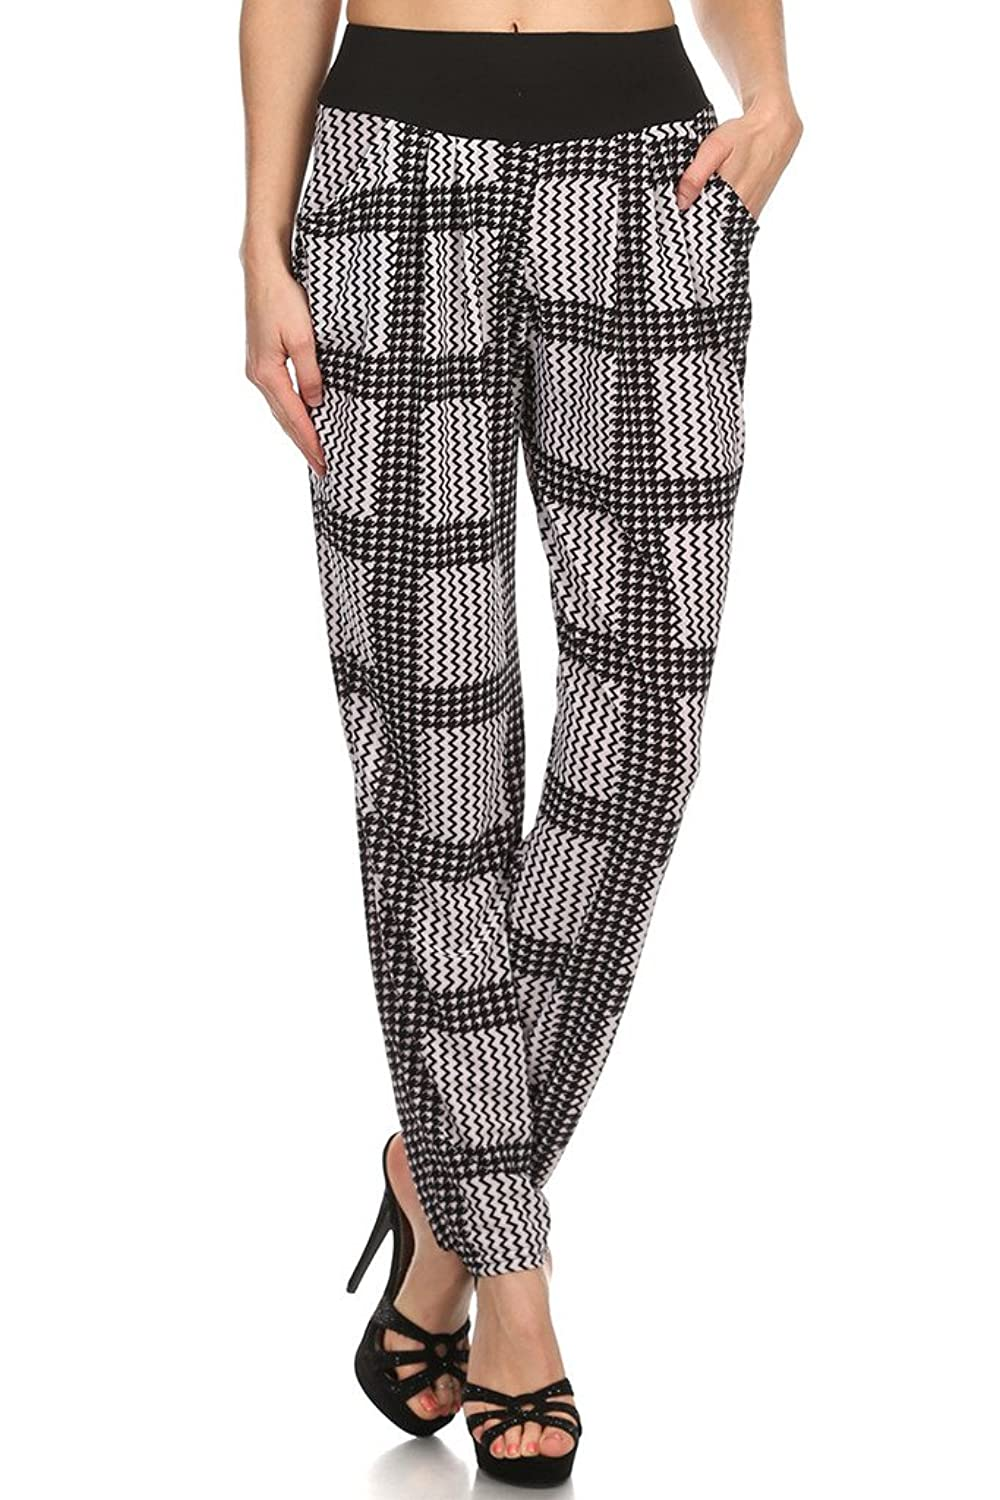 WHITE APPAREL Women's Printed Harem Pants With Side Pockets (Various Styles)